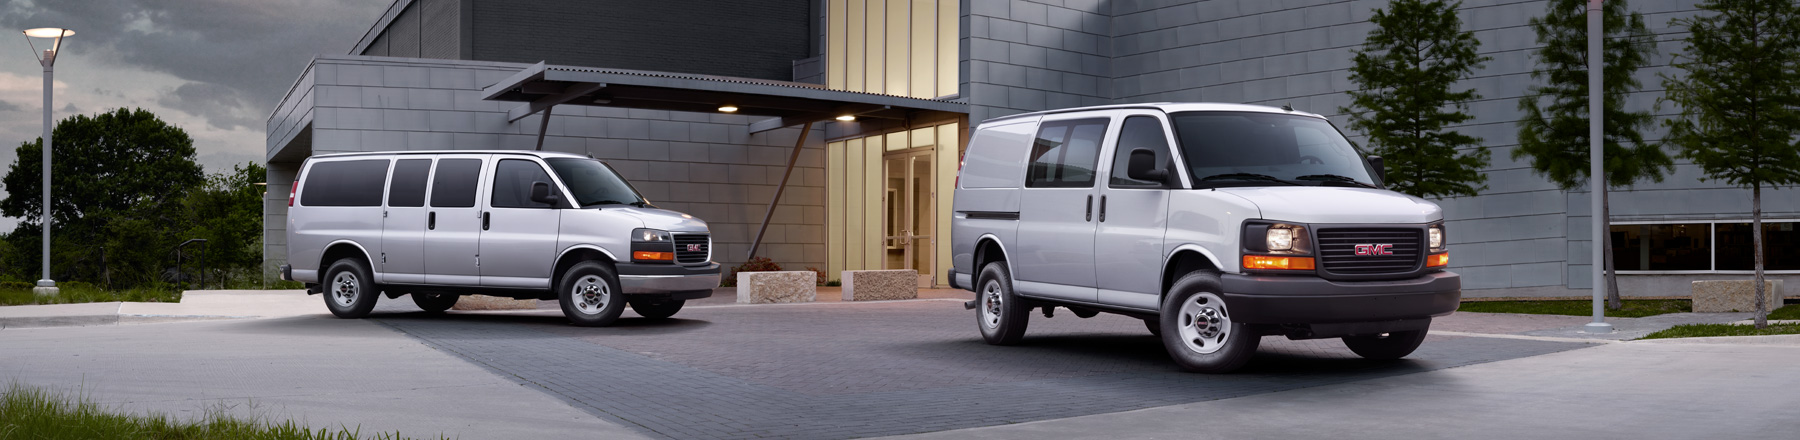 Used GMC Savana cargo vans in Edmonton, AB